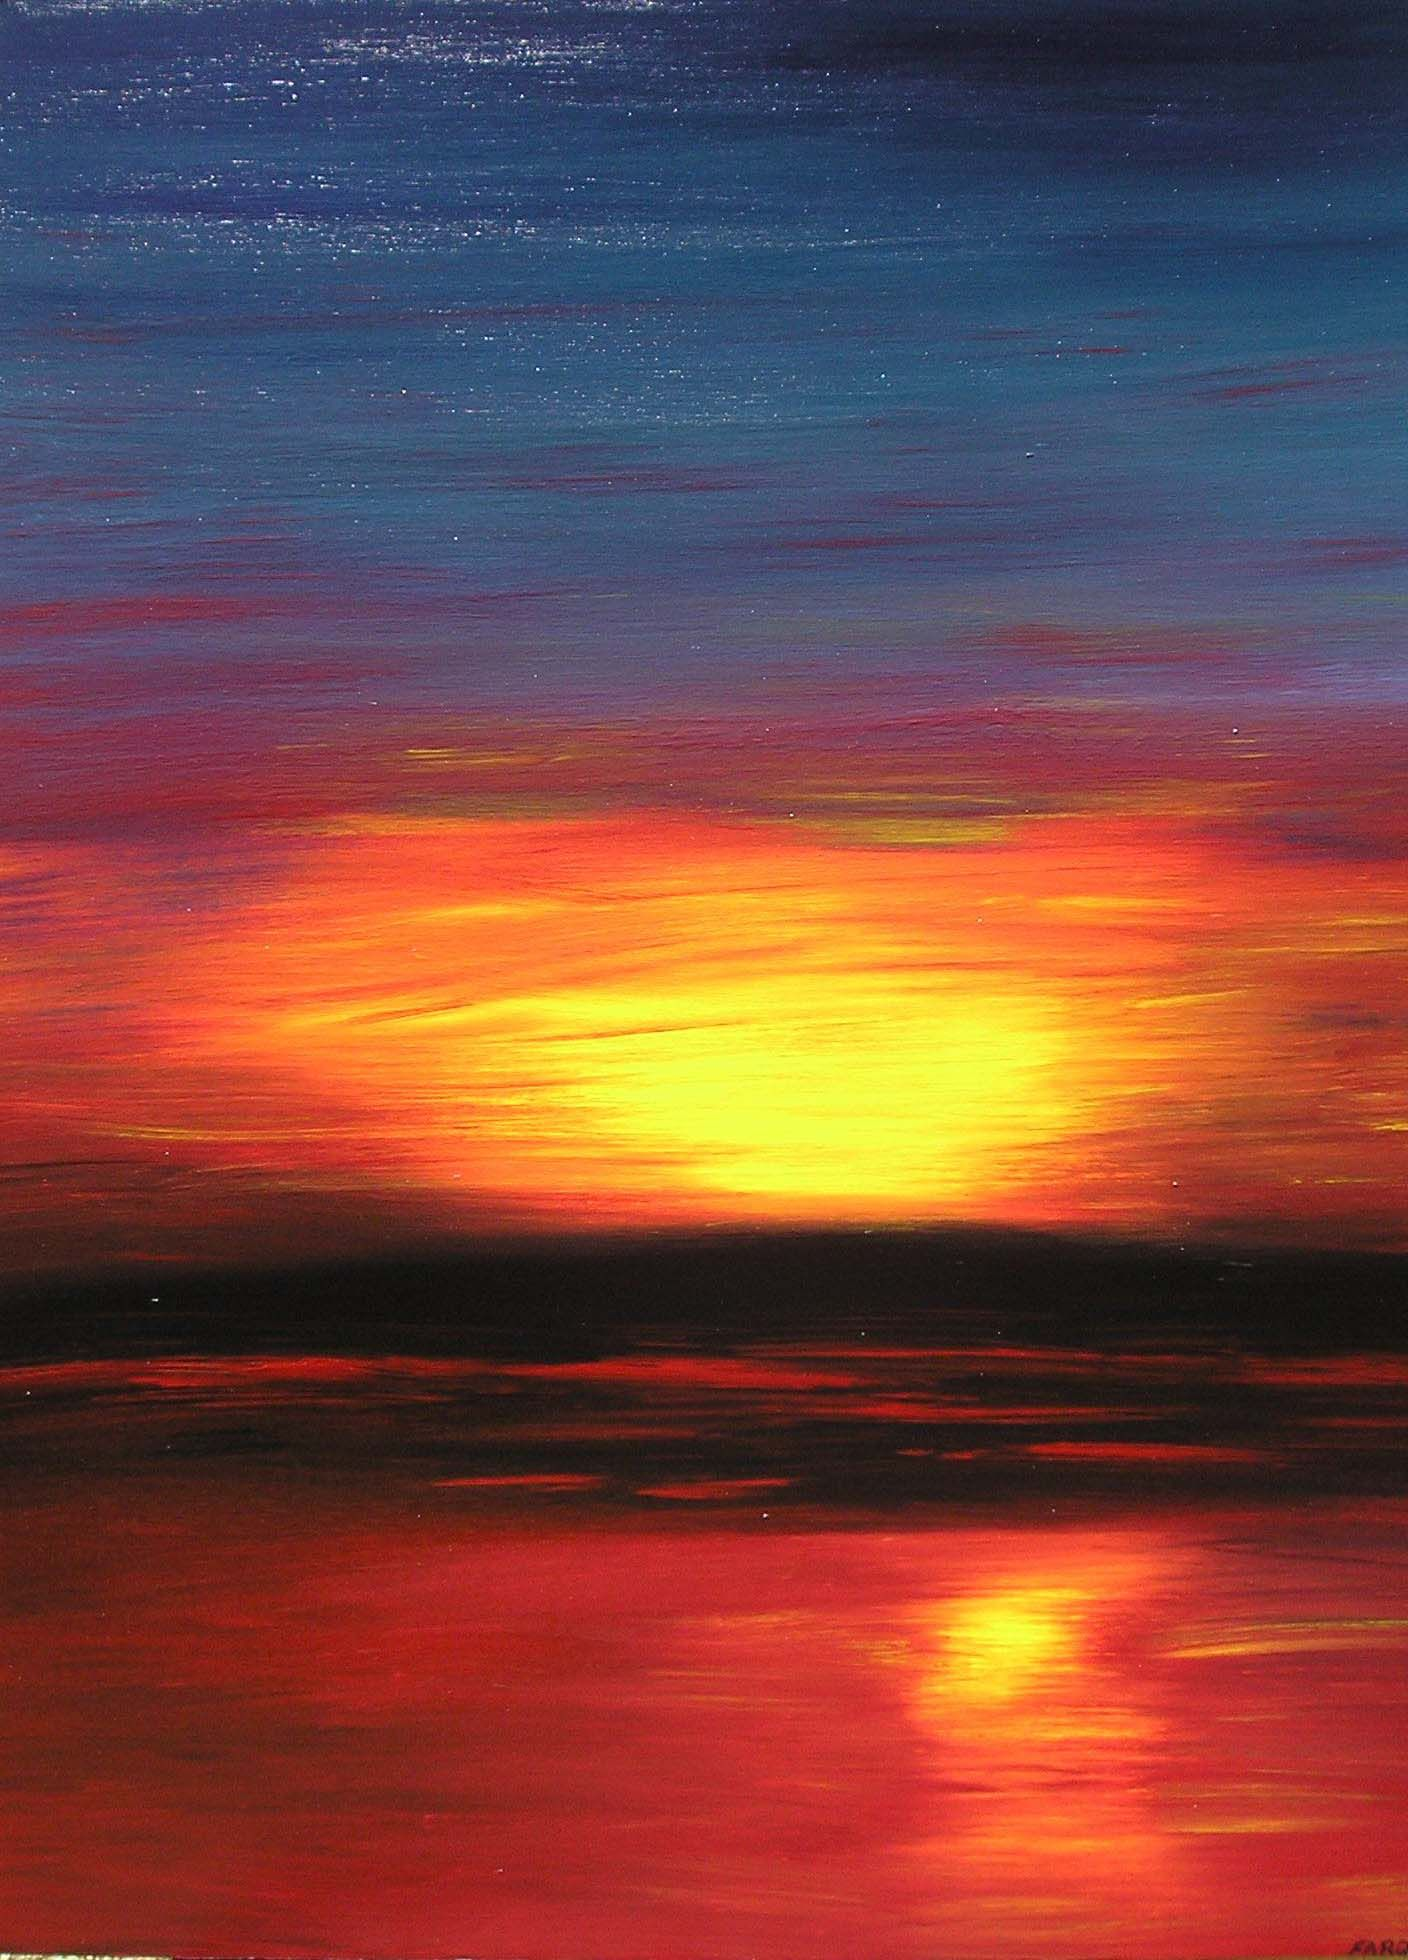 Realistic Abstract Sand Dune Desert Sunset Large Oil Painting Canvas Original Red Yellow Art